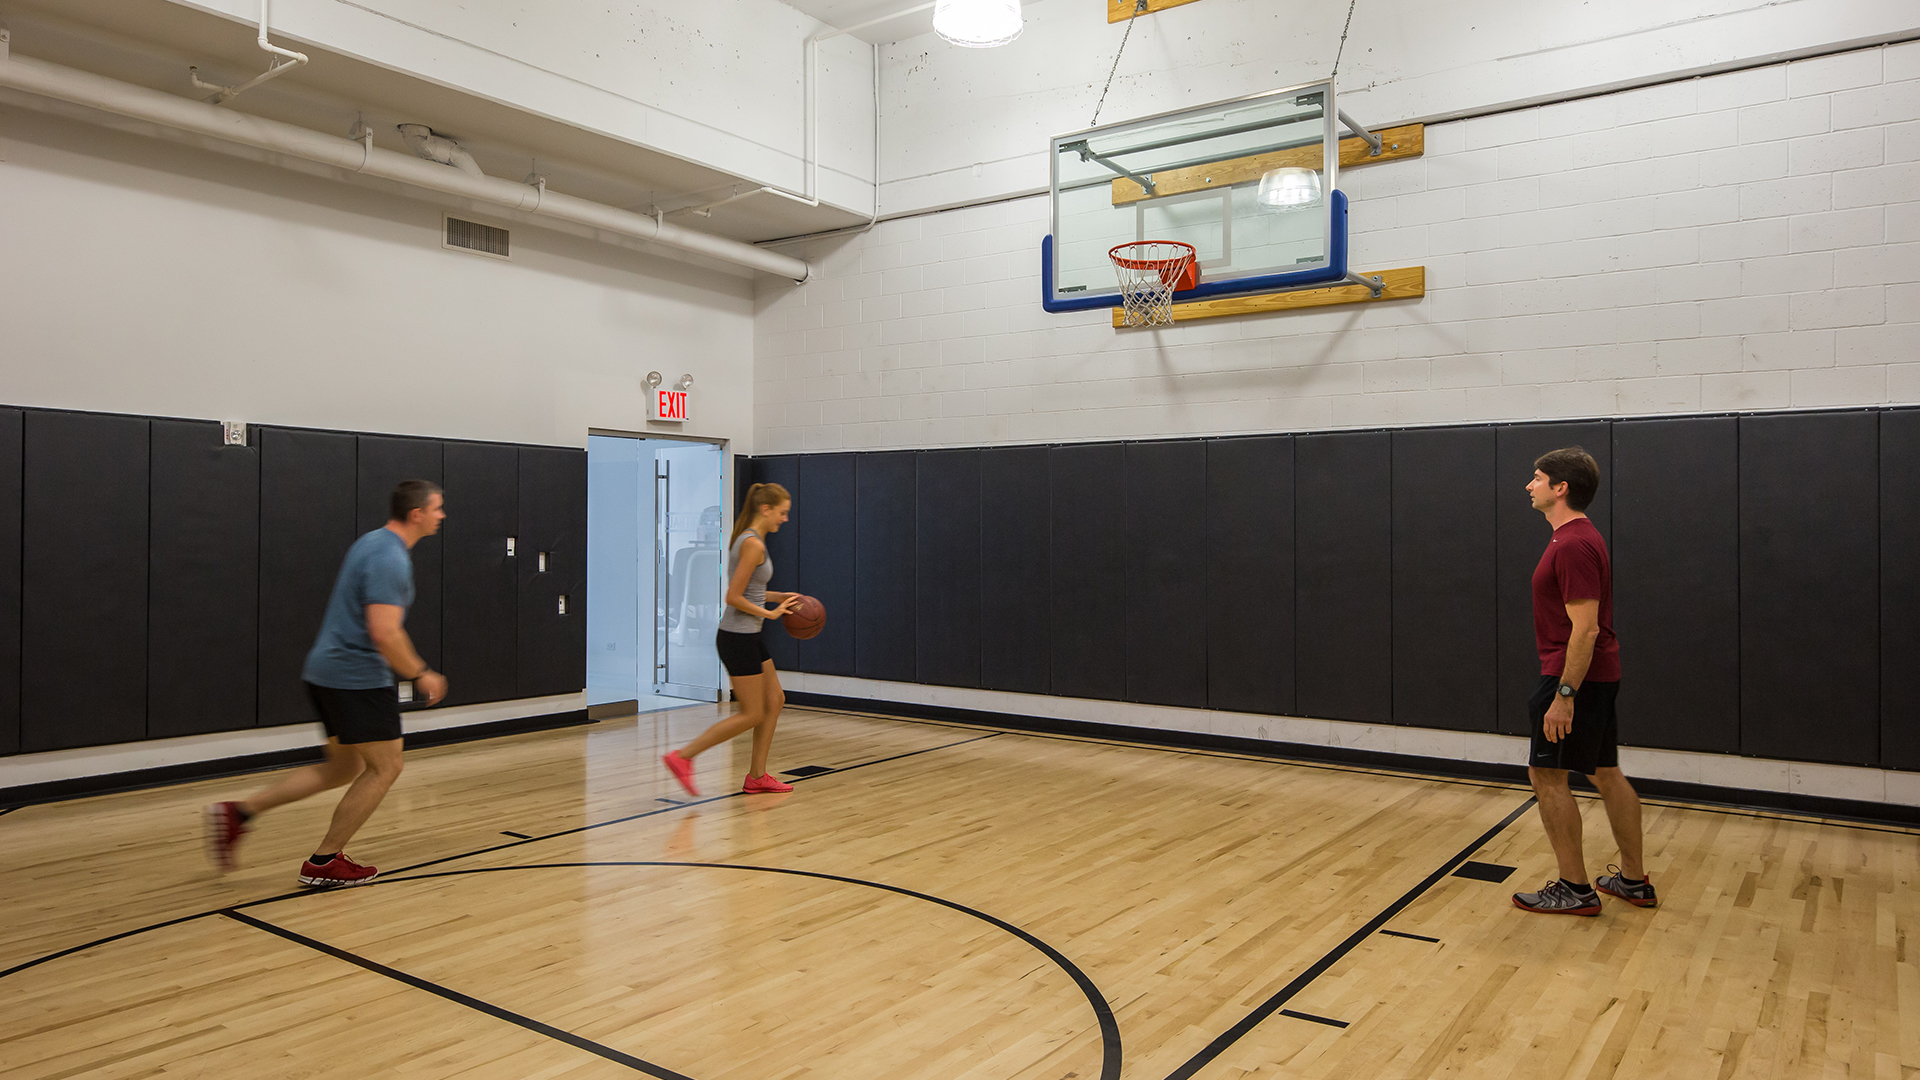 Mercedes club luxury health and fitness club in manhattan for Indoor basketball court installation